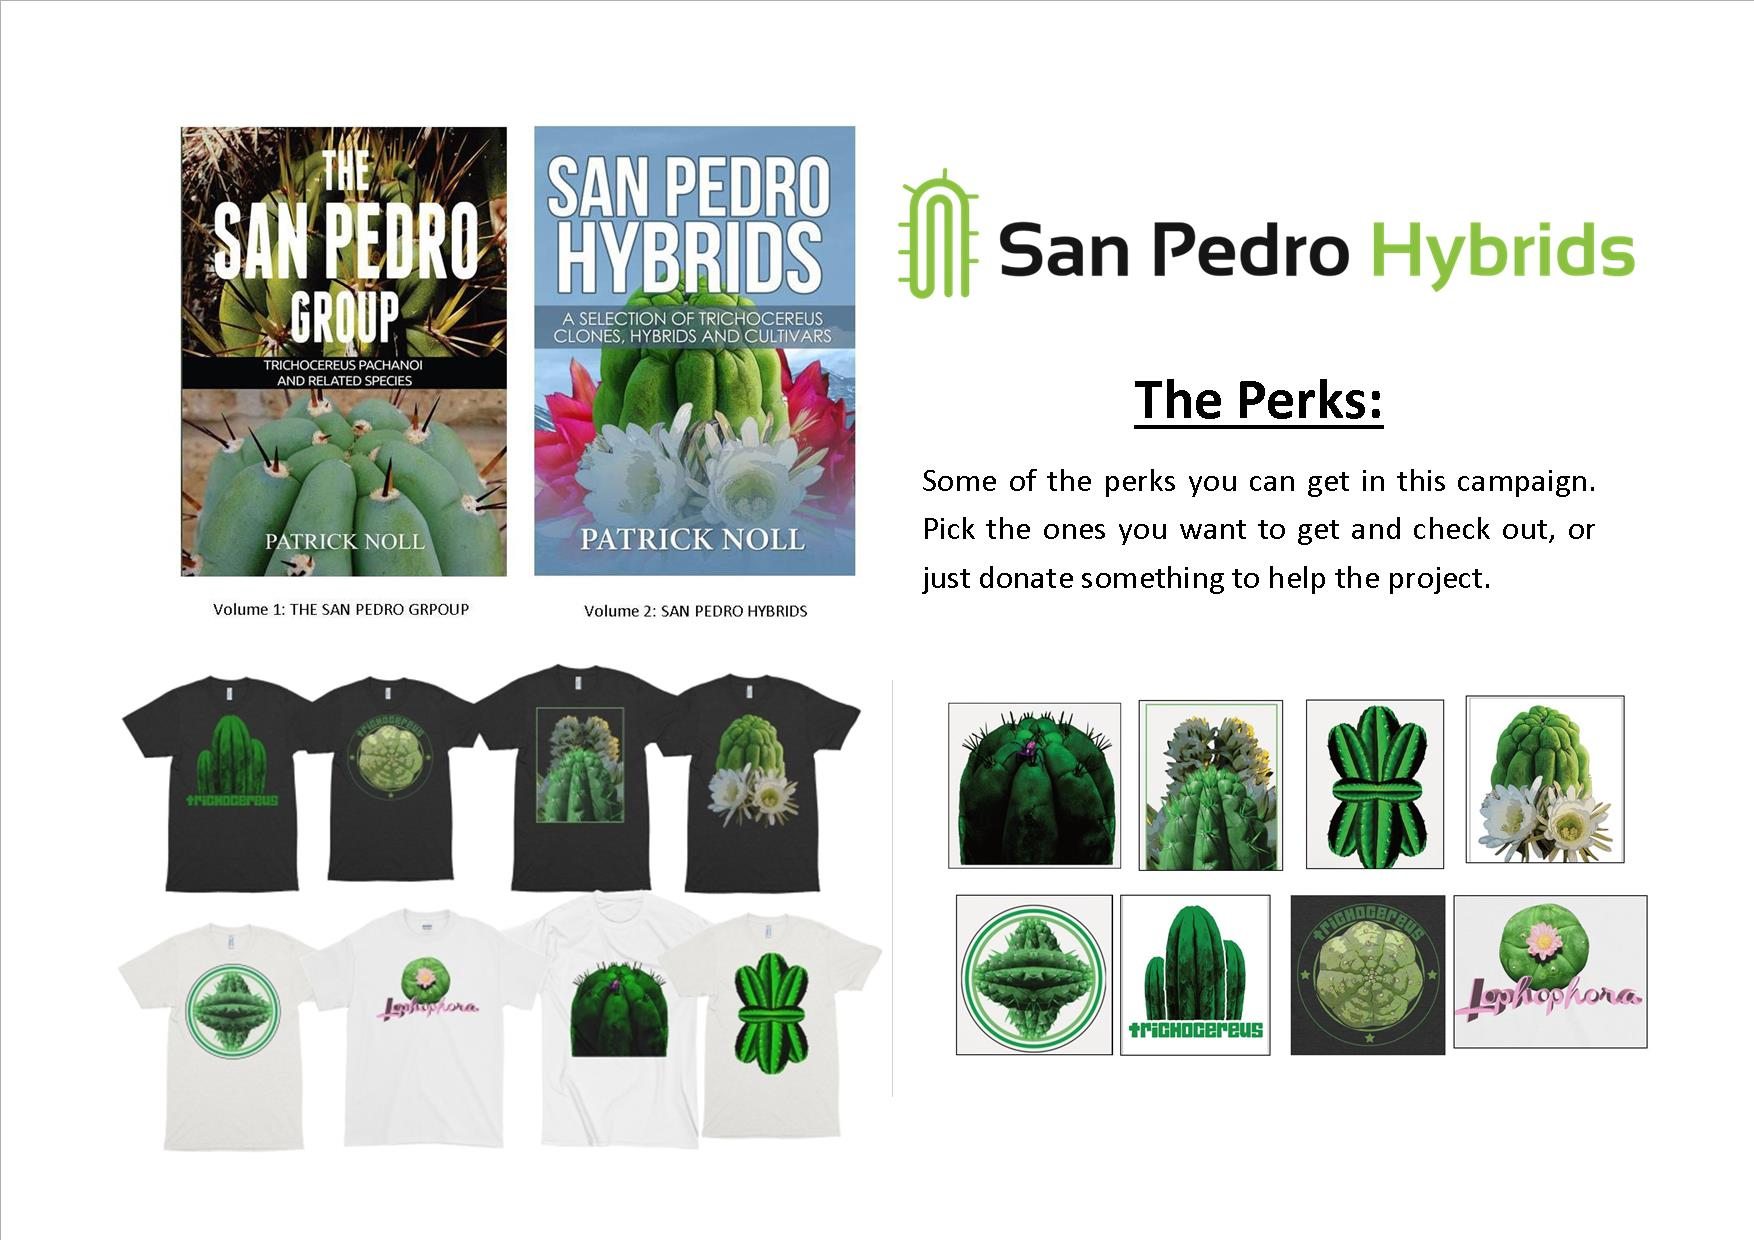 get-the-second-trichocereus-book-san-pedro-hybrids-now